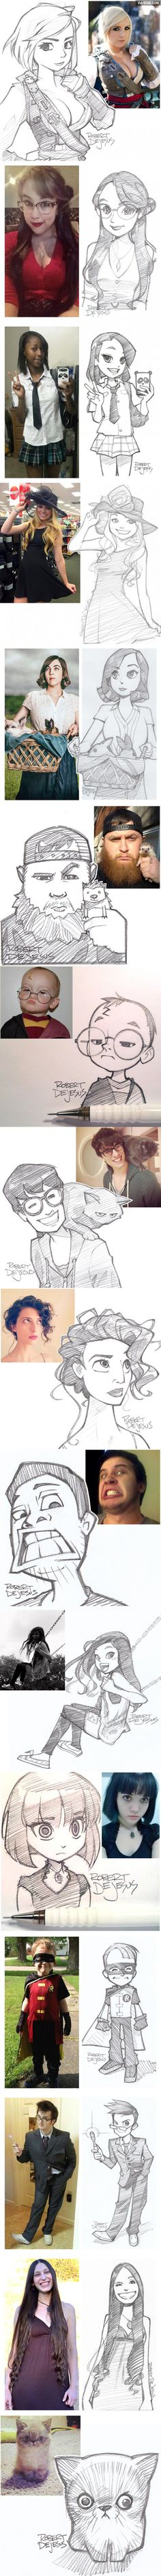 Robert DeJesus sketches friends as anime-style.